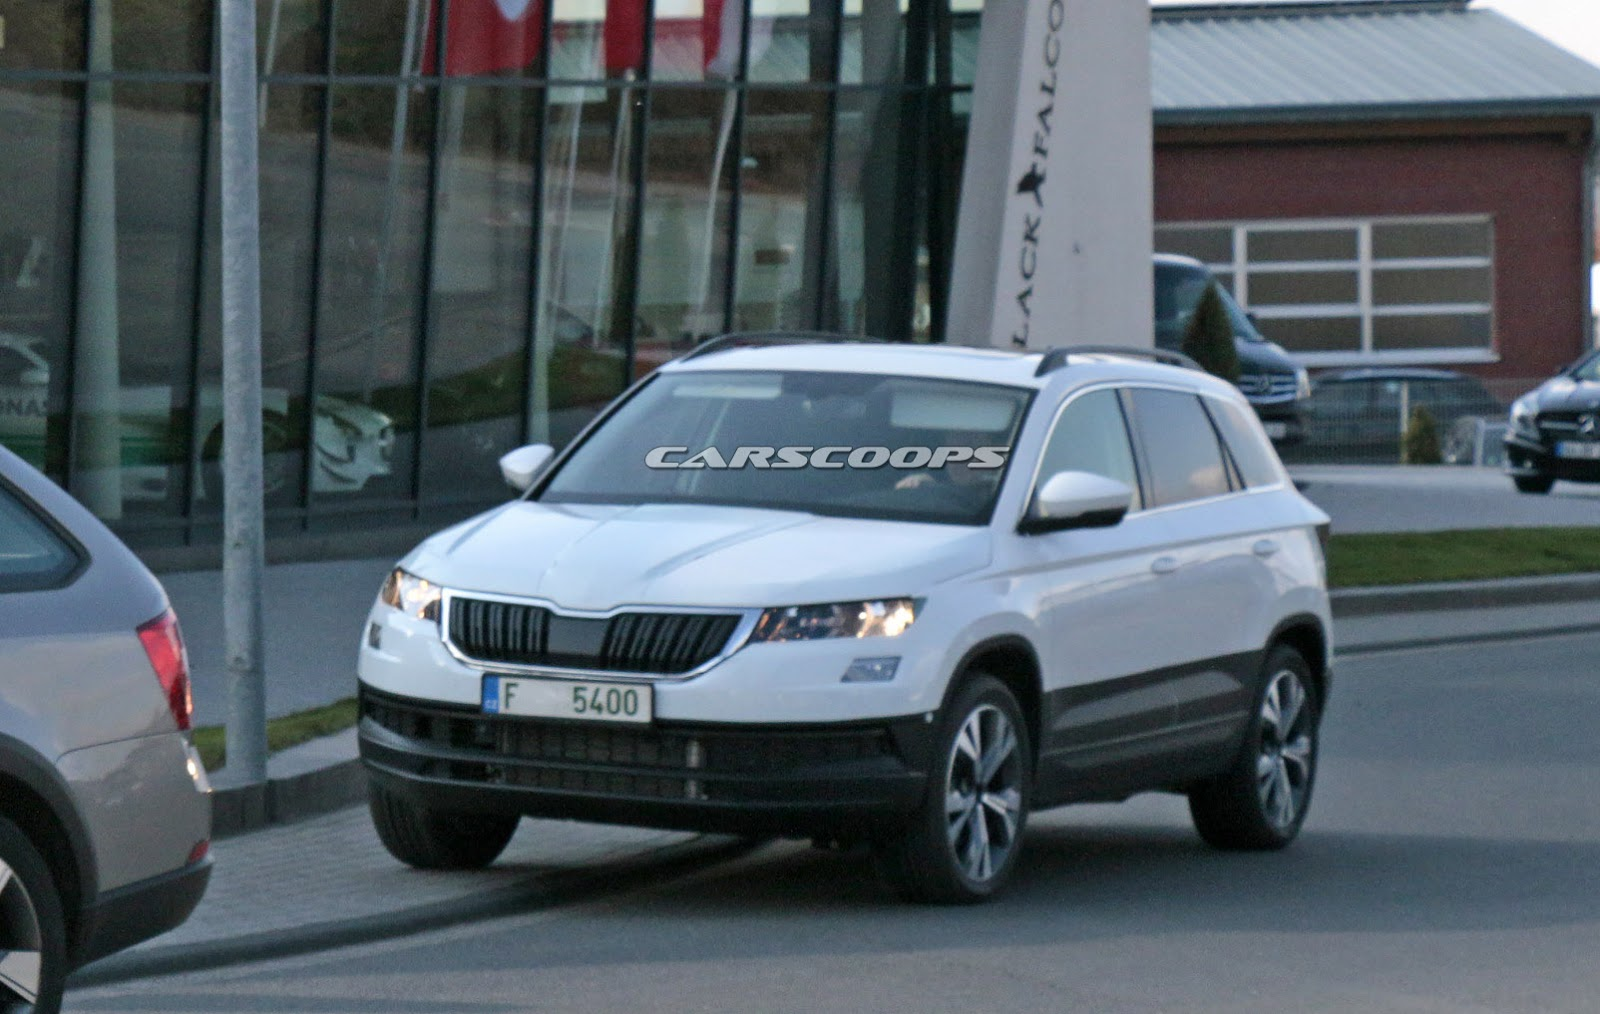 Skoda's New Compact SUV Named Karoq, Debuts On May 18